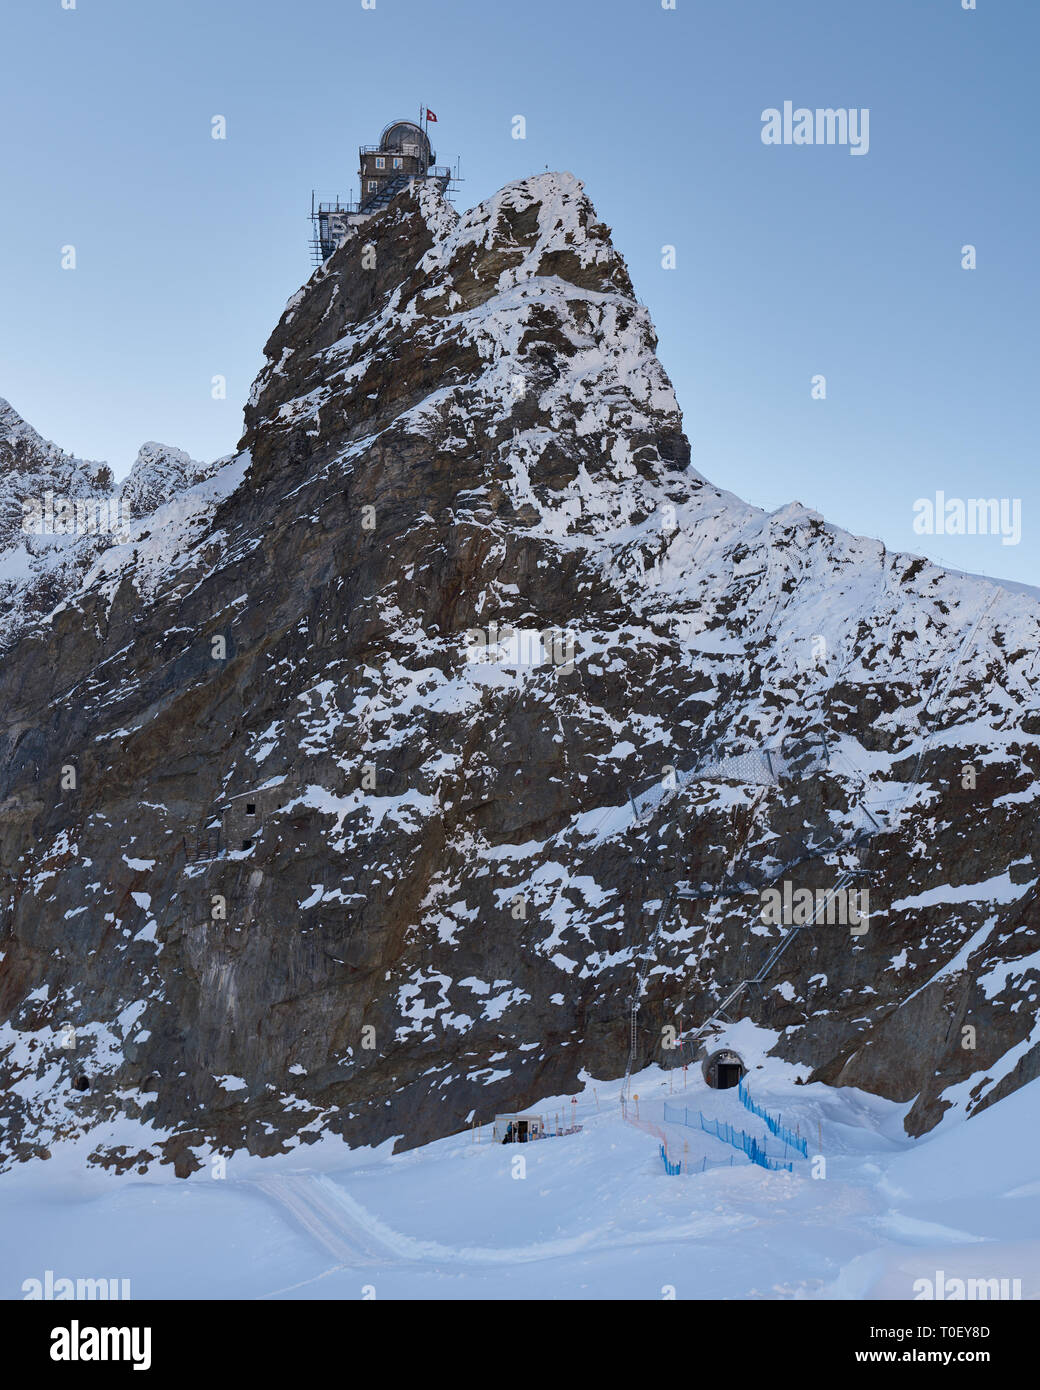 Unplugged in the Jungfrau region. A dusk view of the high altitude Sphinx Observatory viewed from a west side snow trail - Stock Image